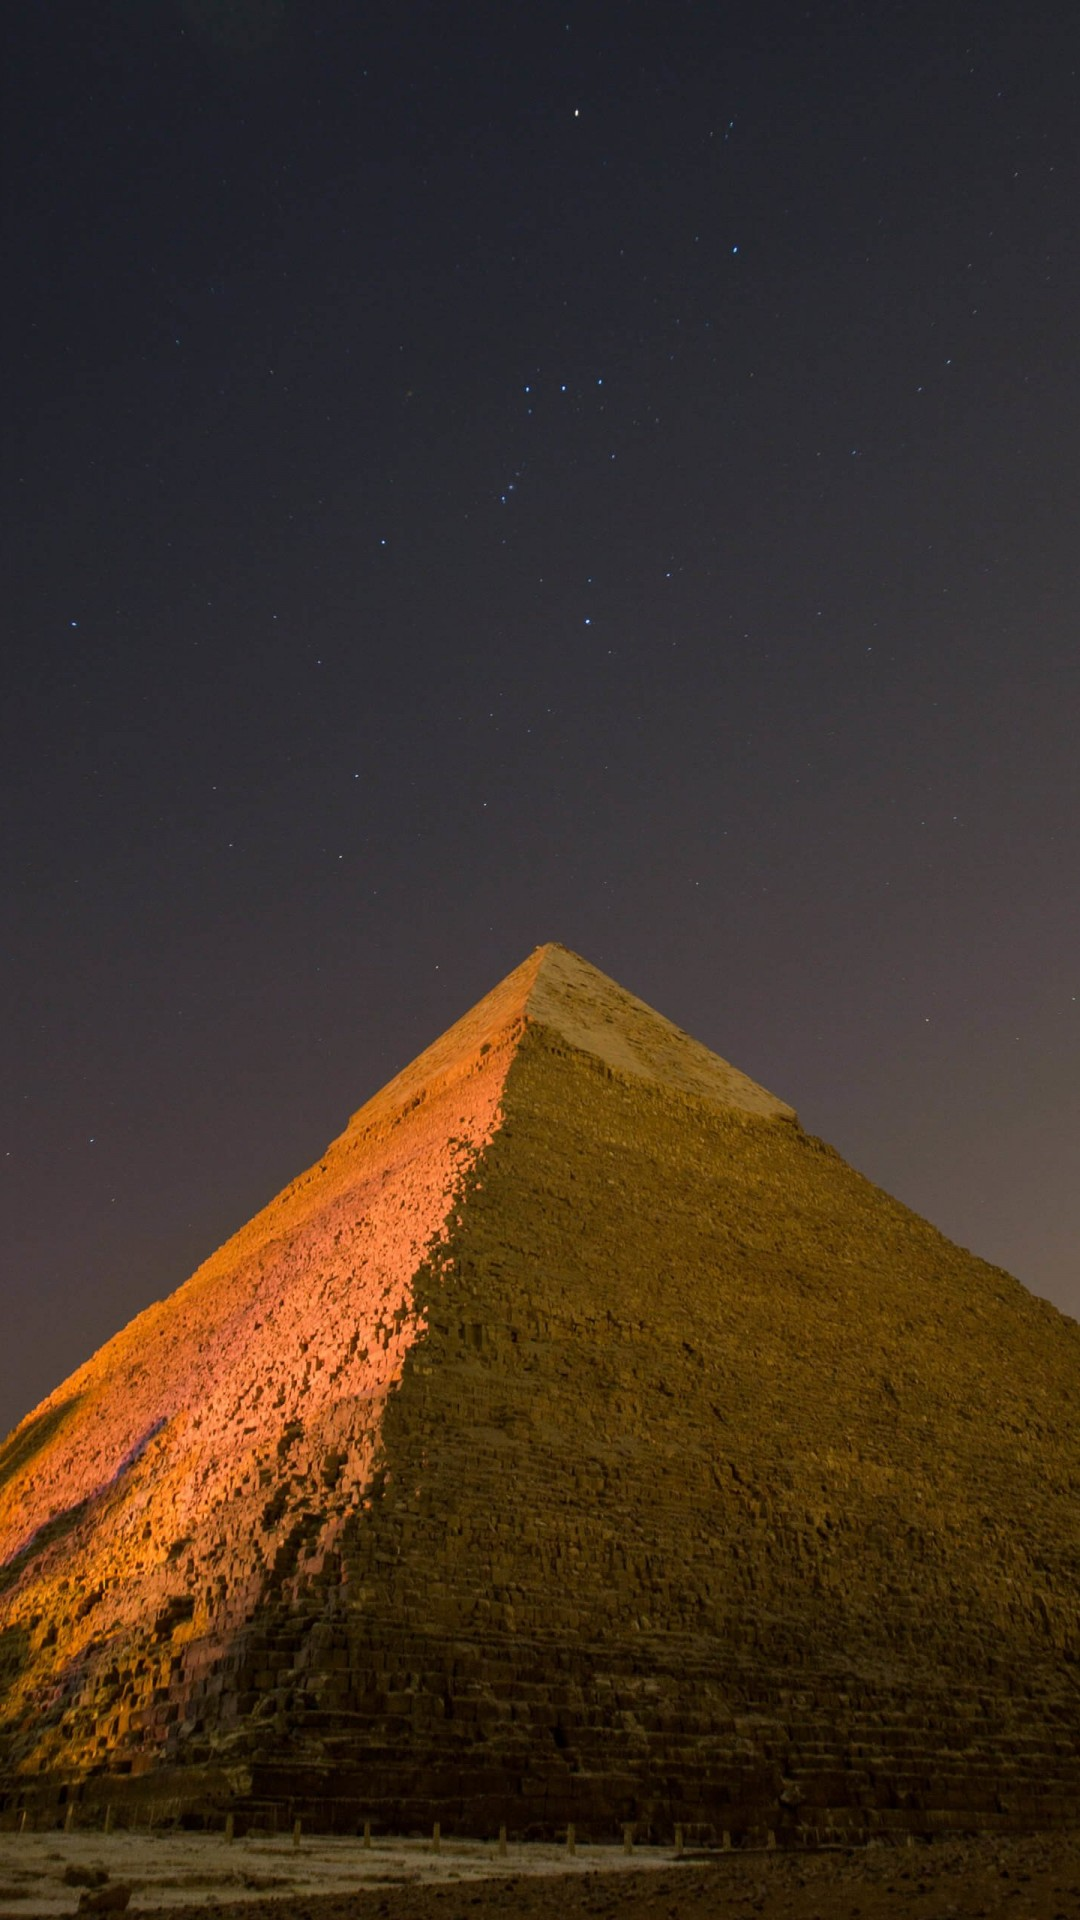 Pyramid by Night Wallpaper for LG G2